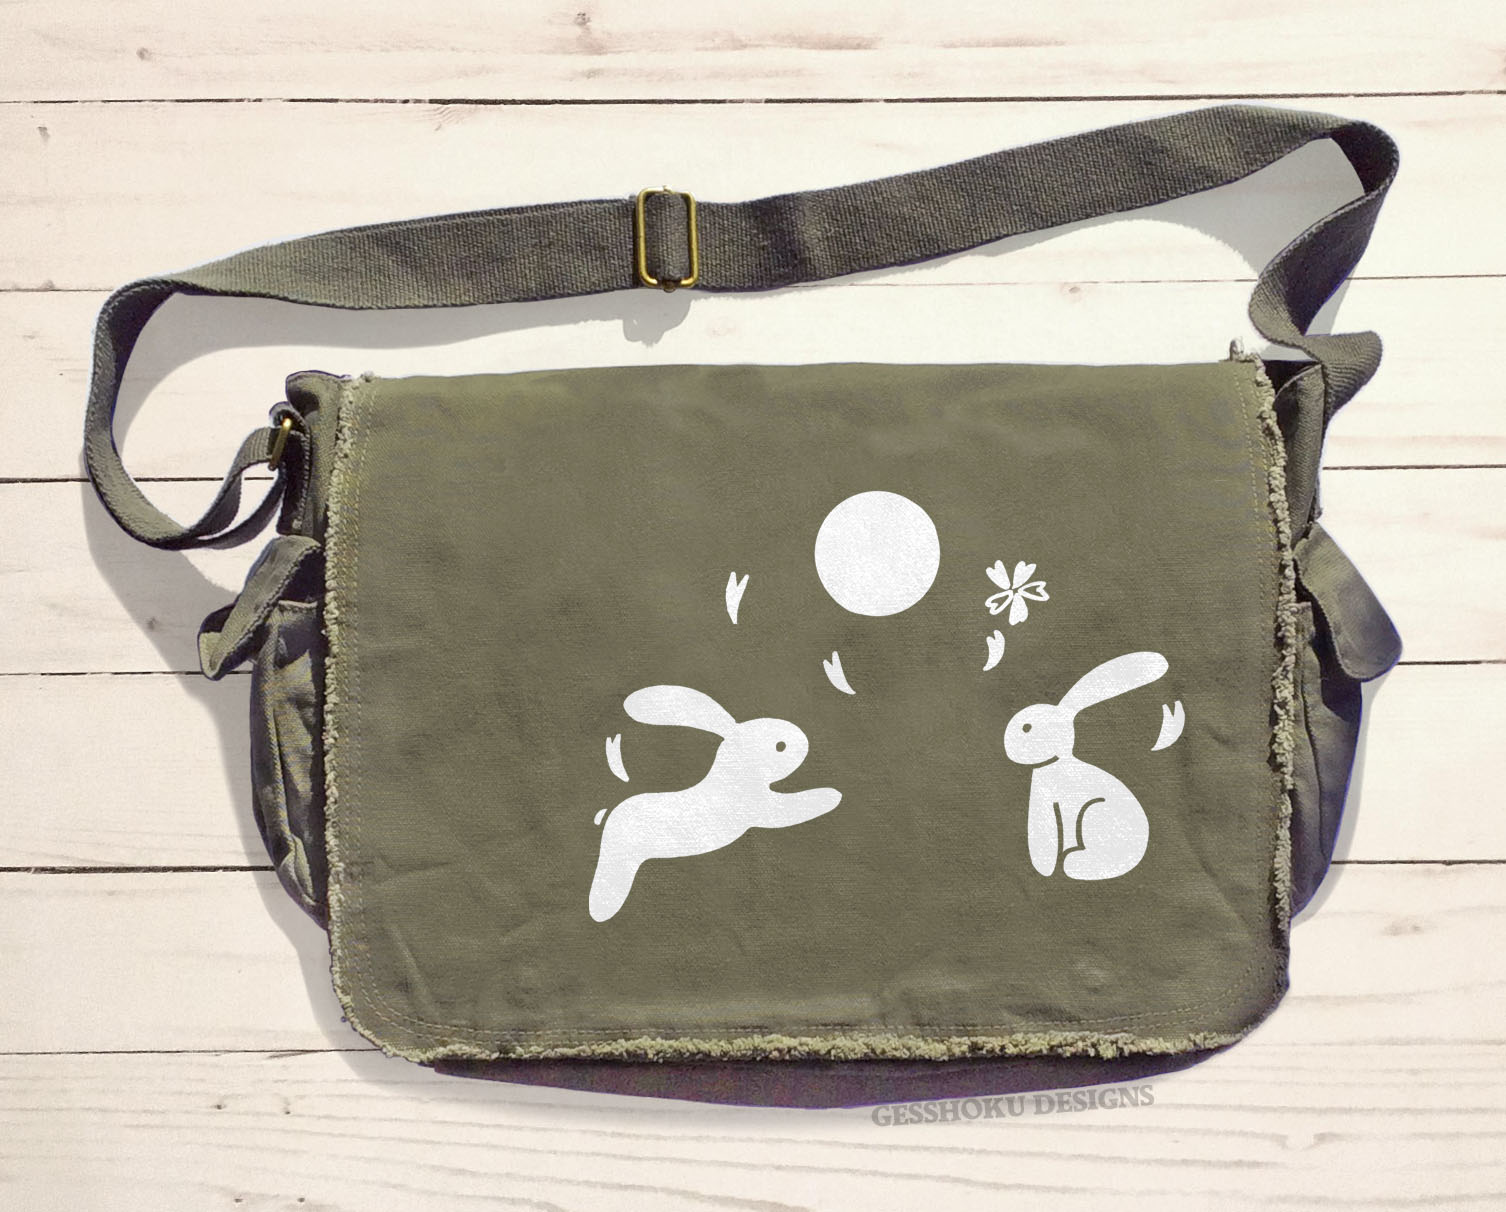 Asian Moon Bunnies Messenger Bag - Khaki Green